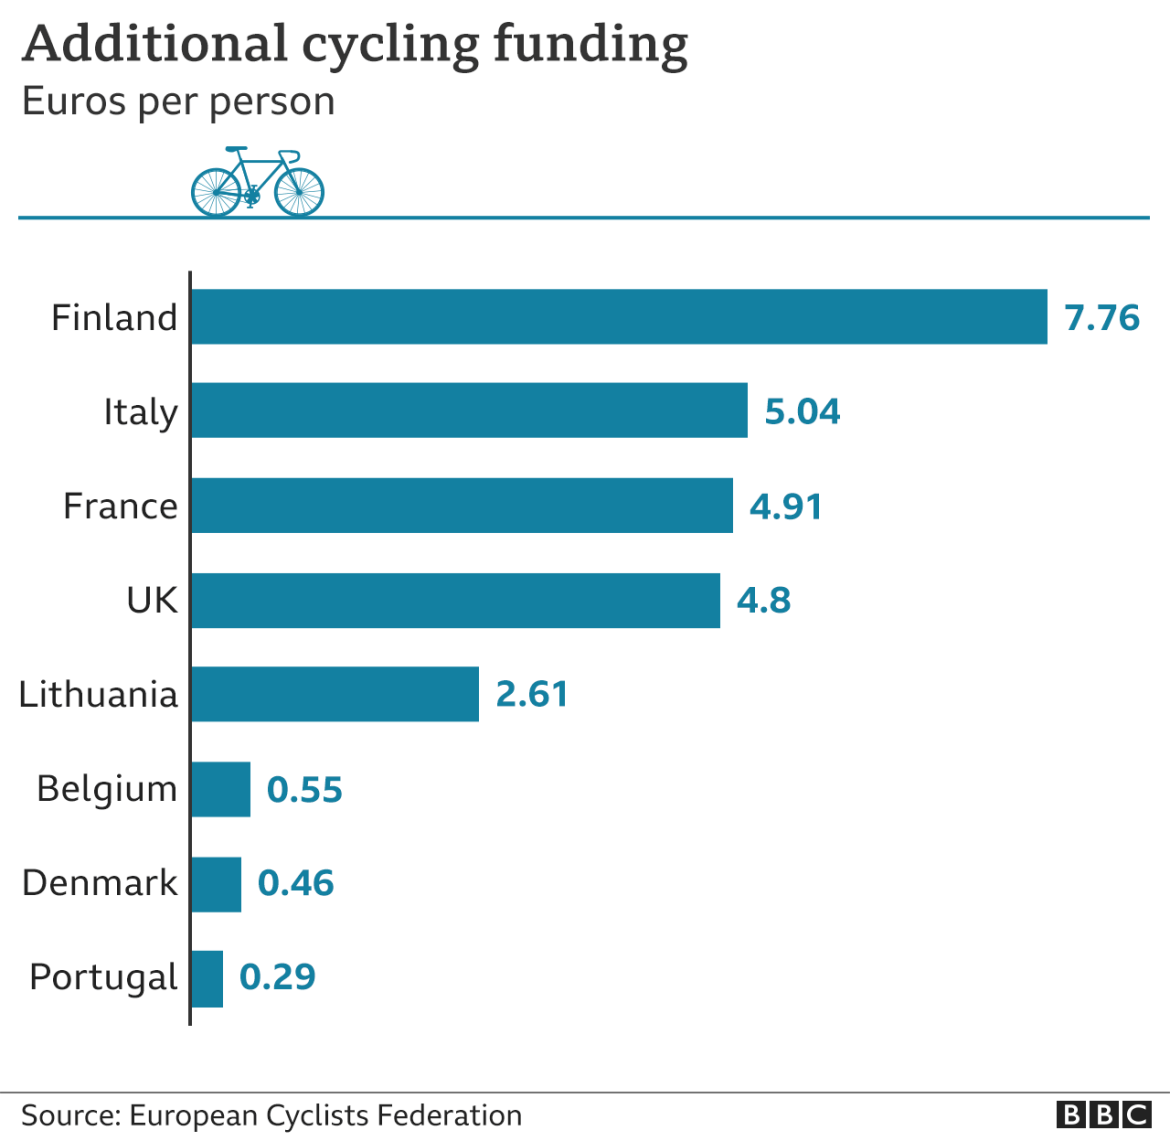 Graphic showing additional cycling investment around Europe per person